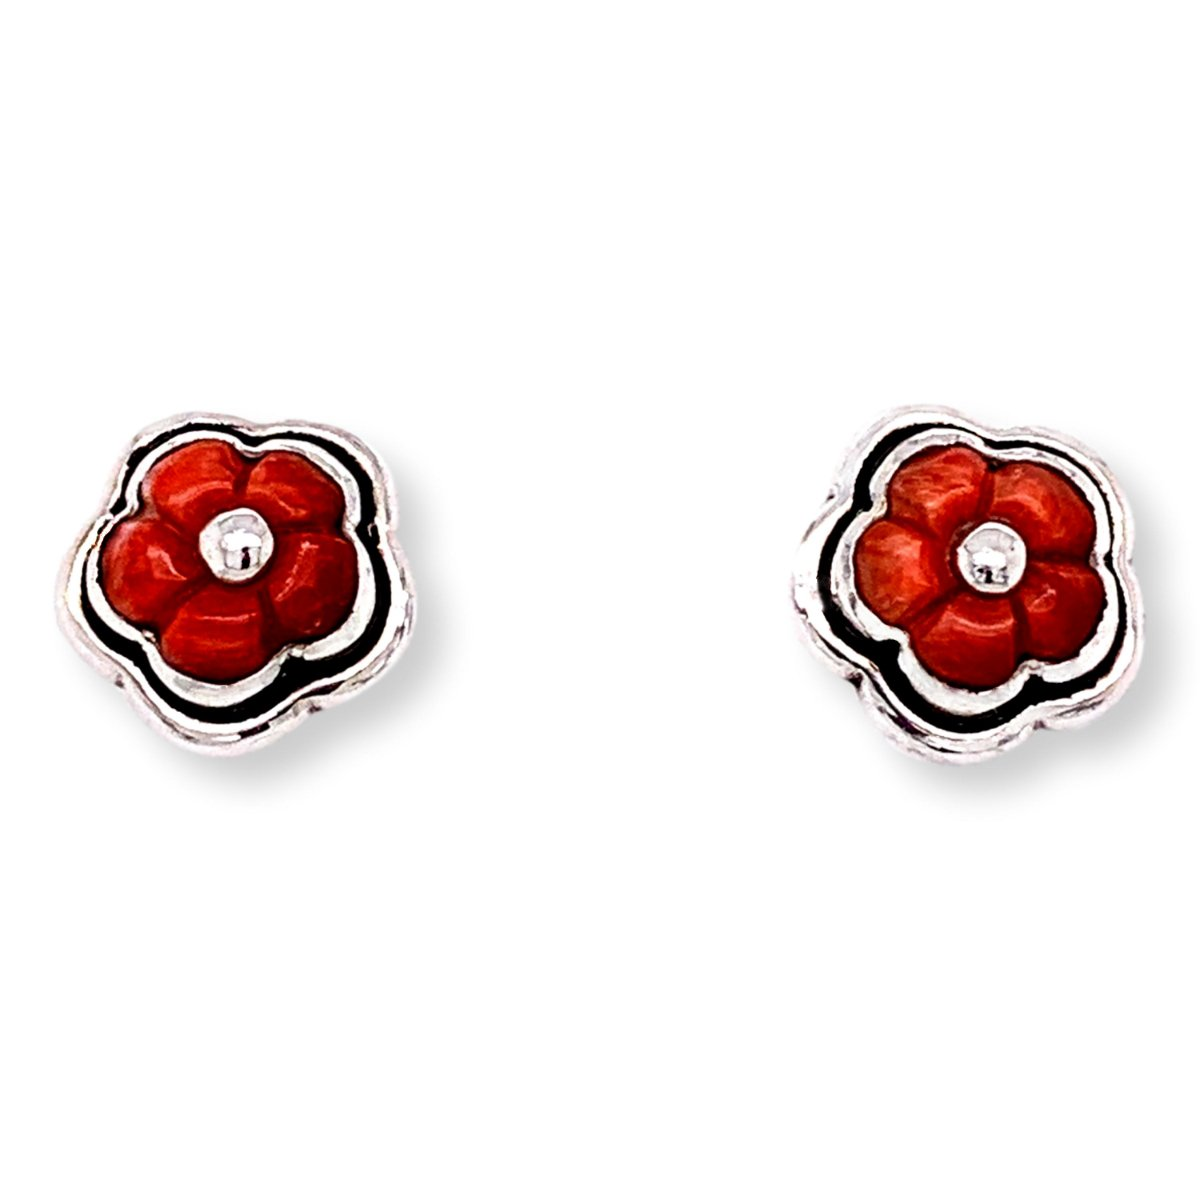 Spiny Oyster Flower Earrings in Sterling Silver - Red - Qinti - The Peruvian Shop